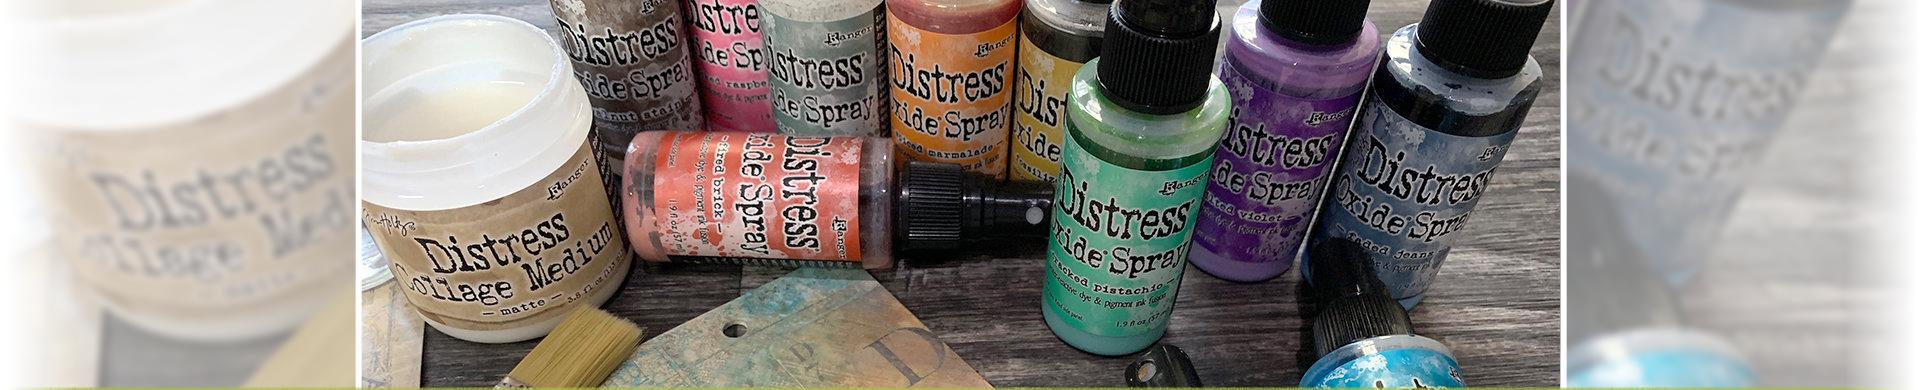 Tim Holtz Distress Oxide Sprays